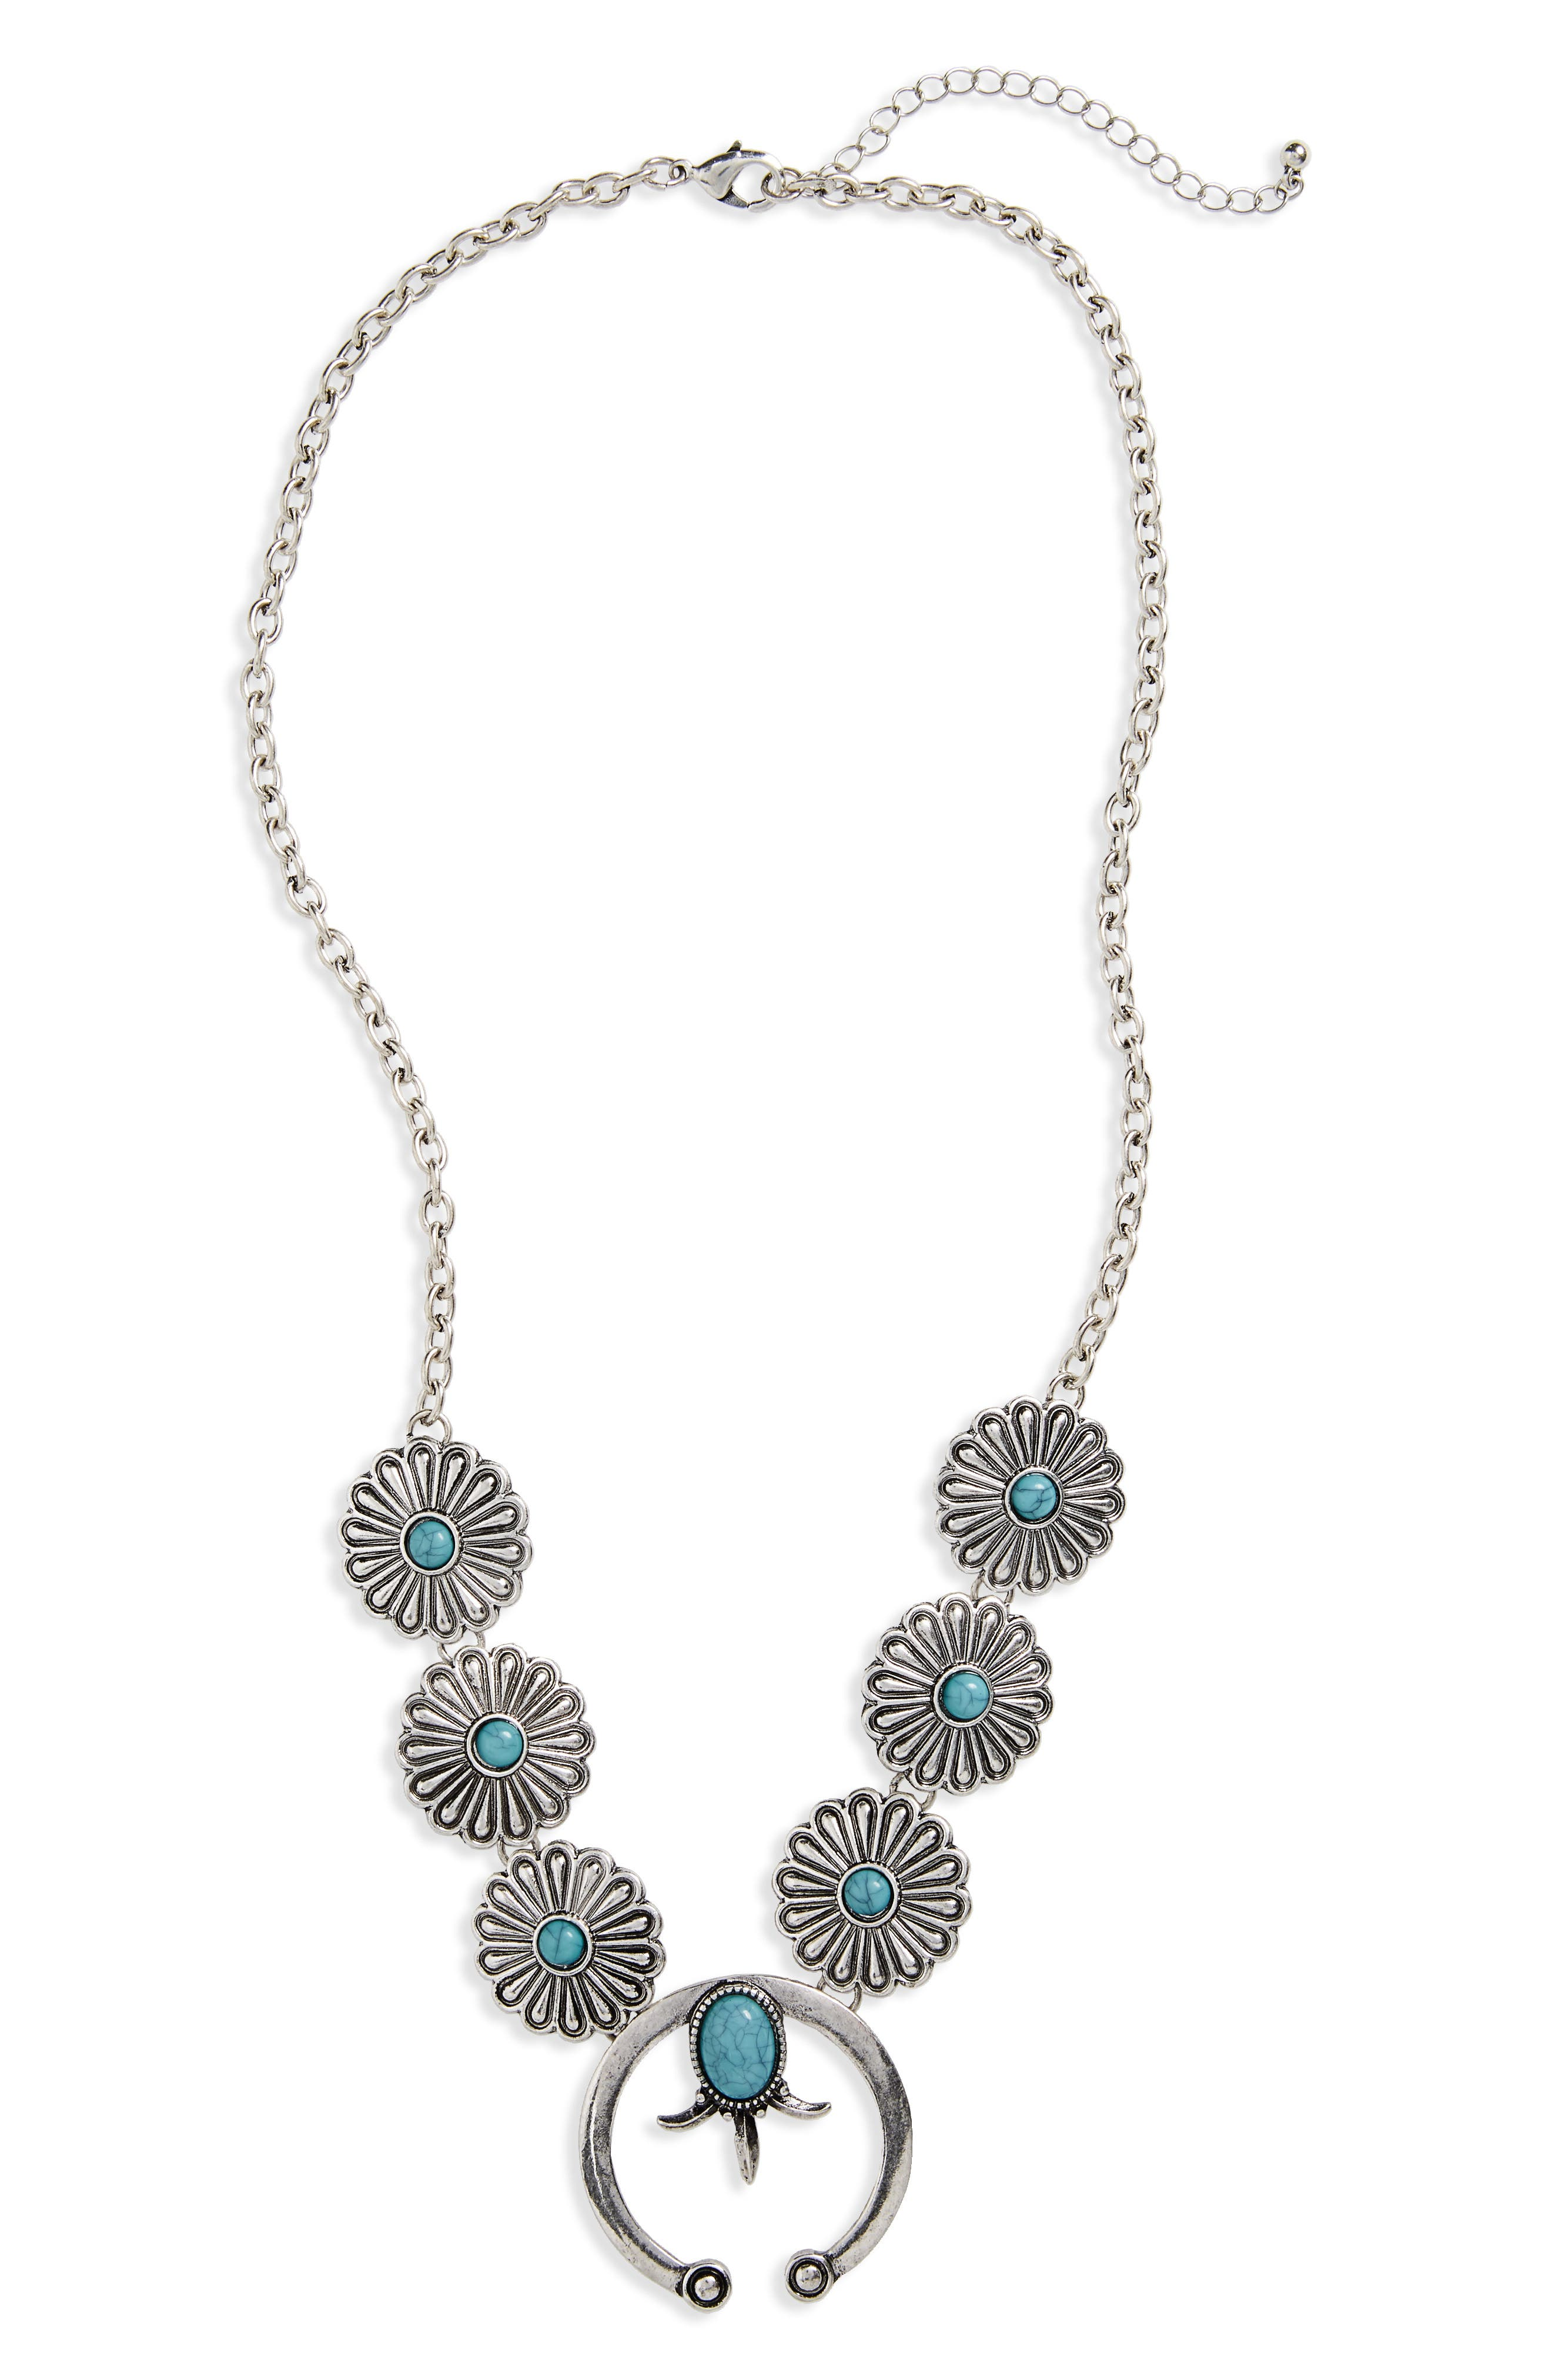 Western Floral Chain Necklace,                         Main,                         color, Silver/ Turquoise